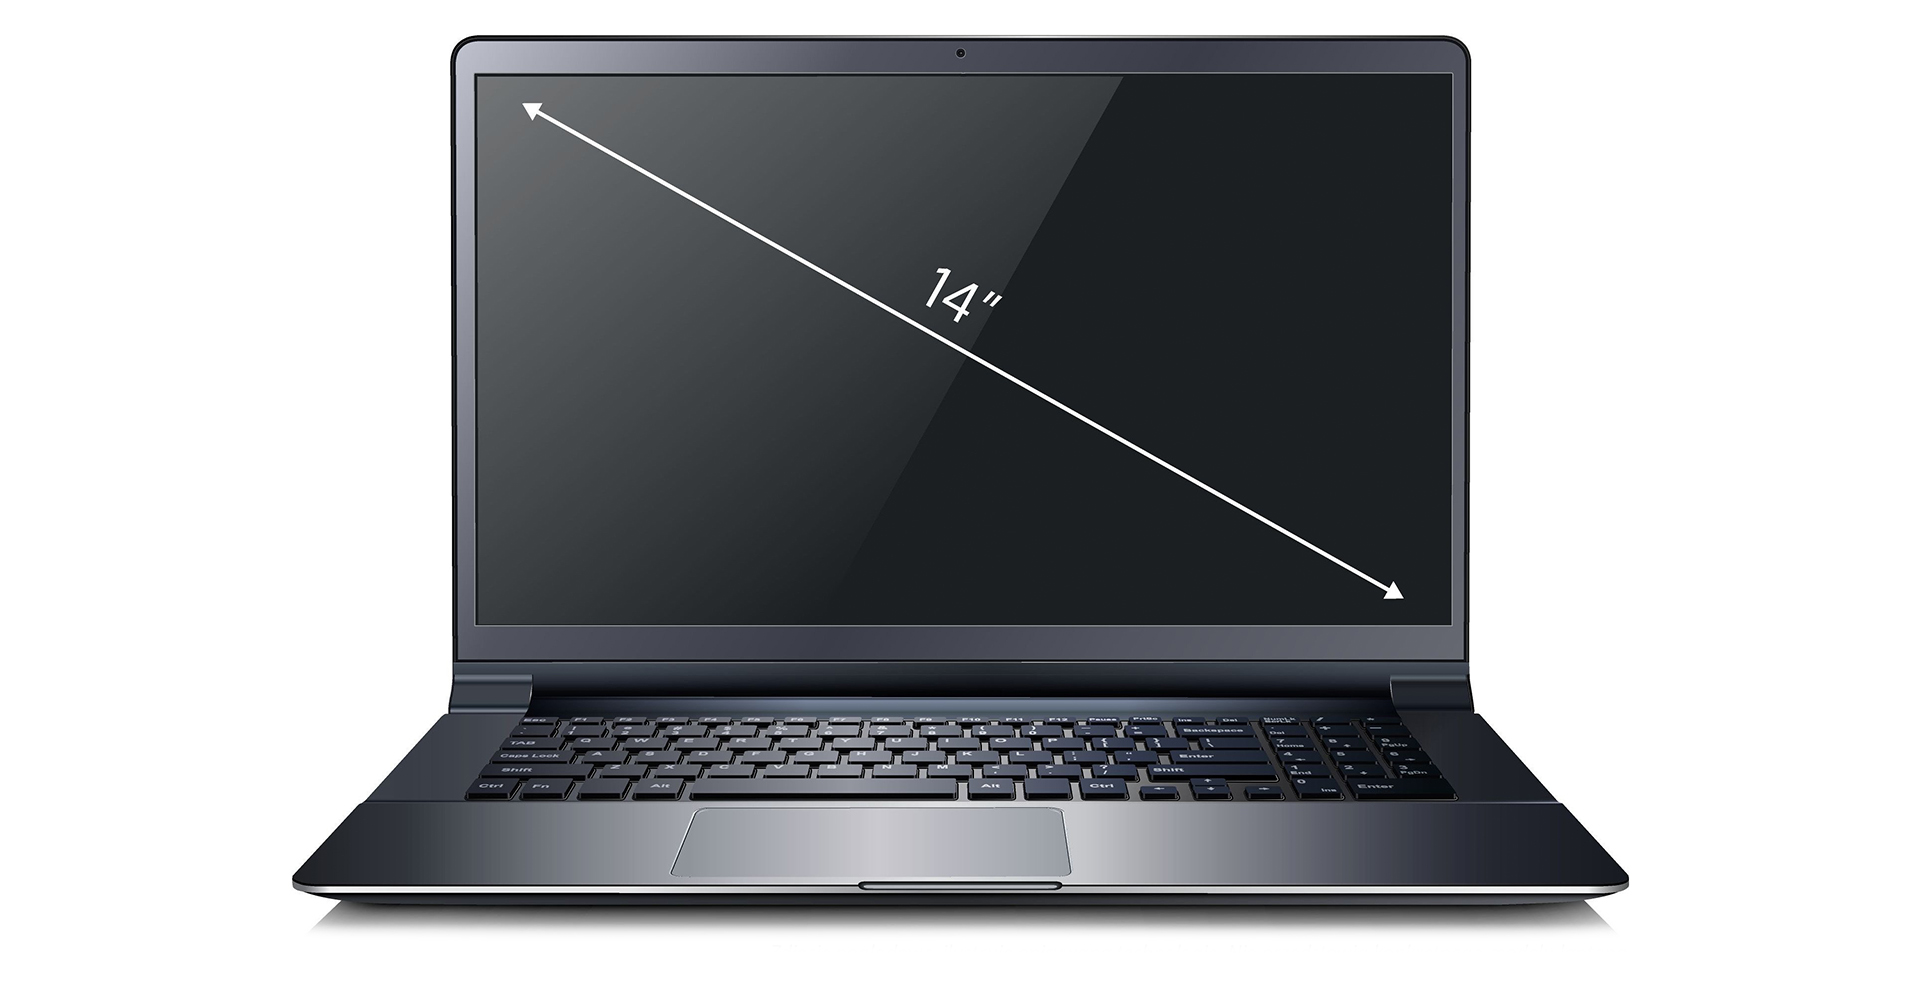 Lenovo IdeaPad S340-14 (81N70062LT)                             14 collas pa diagonāli